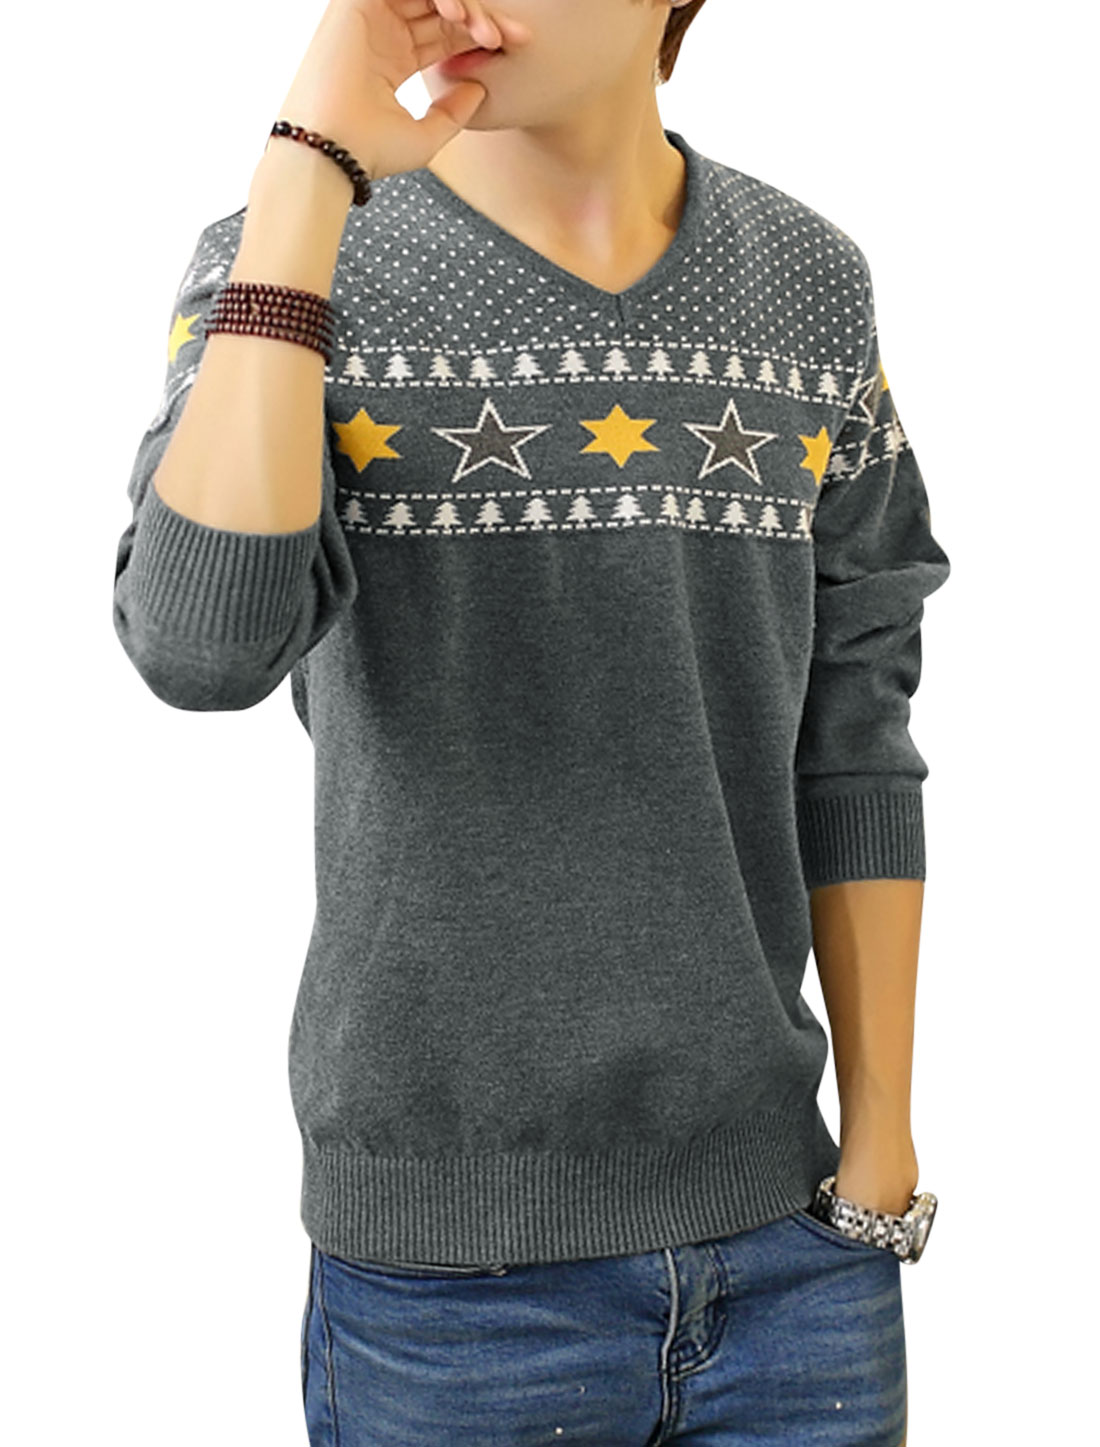 Men Ribbed Cuffs Stars Pattern Tree Dots Pattern Casual Sweater Light Gray M